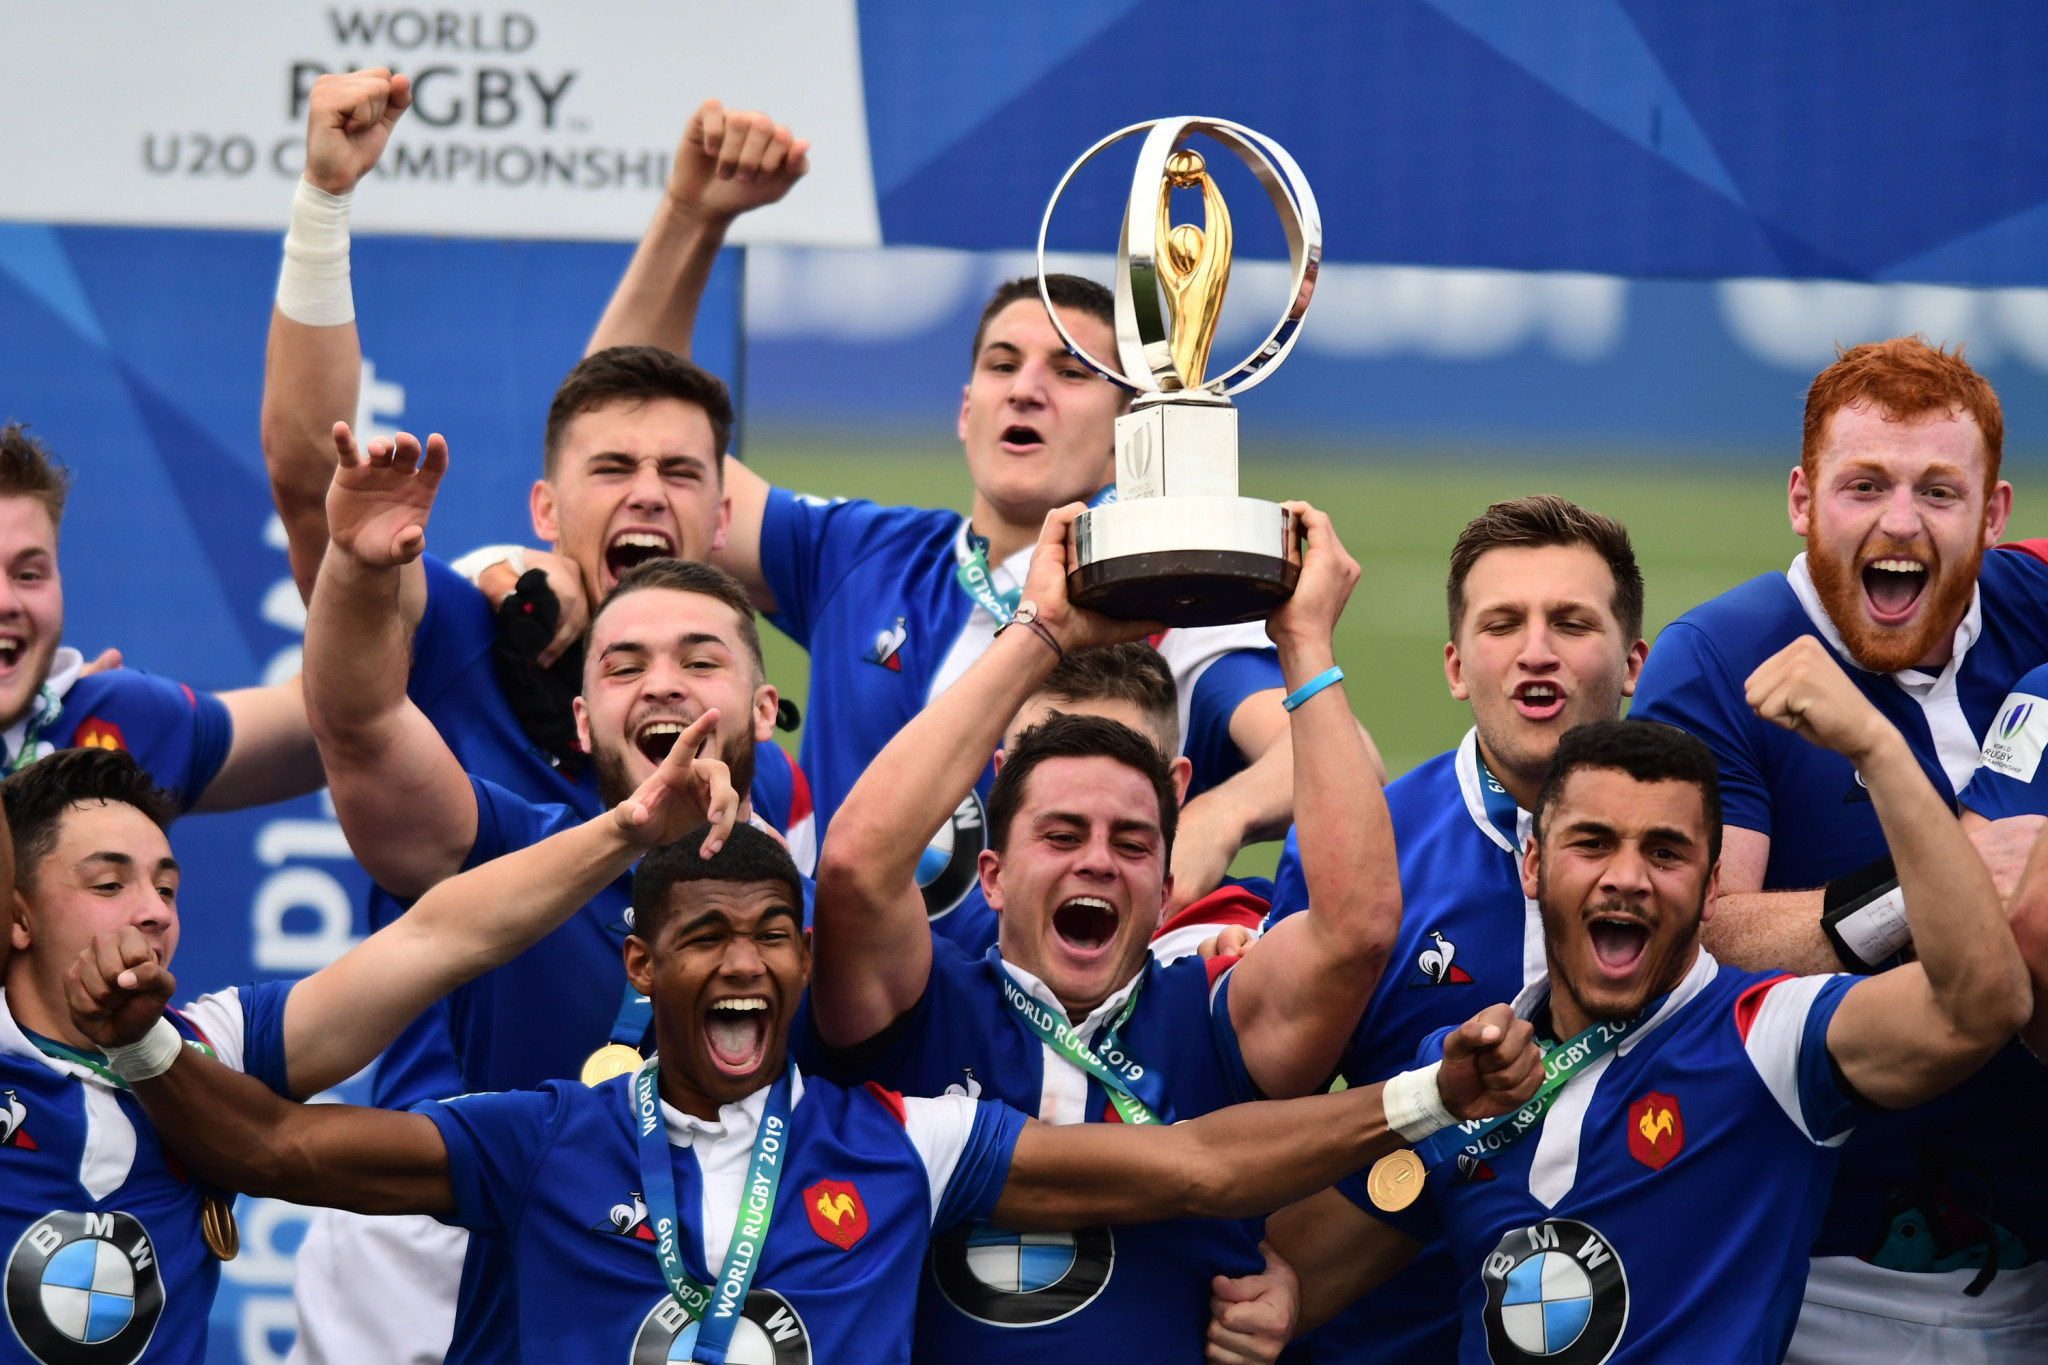 England and South Africa to lock horns again, at World Rugby U20 Championship